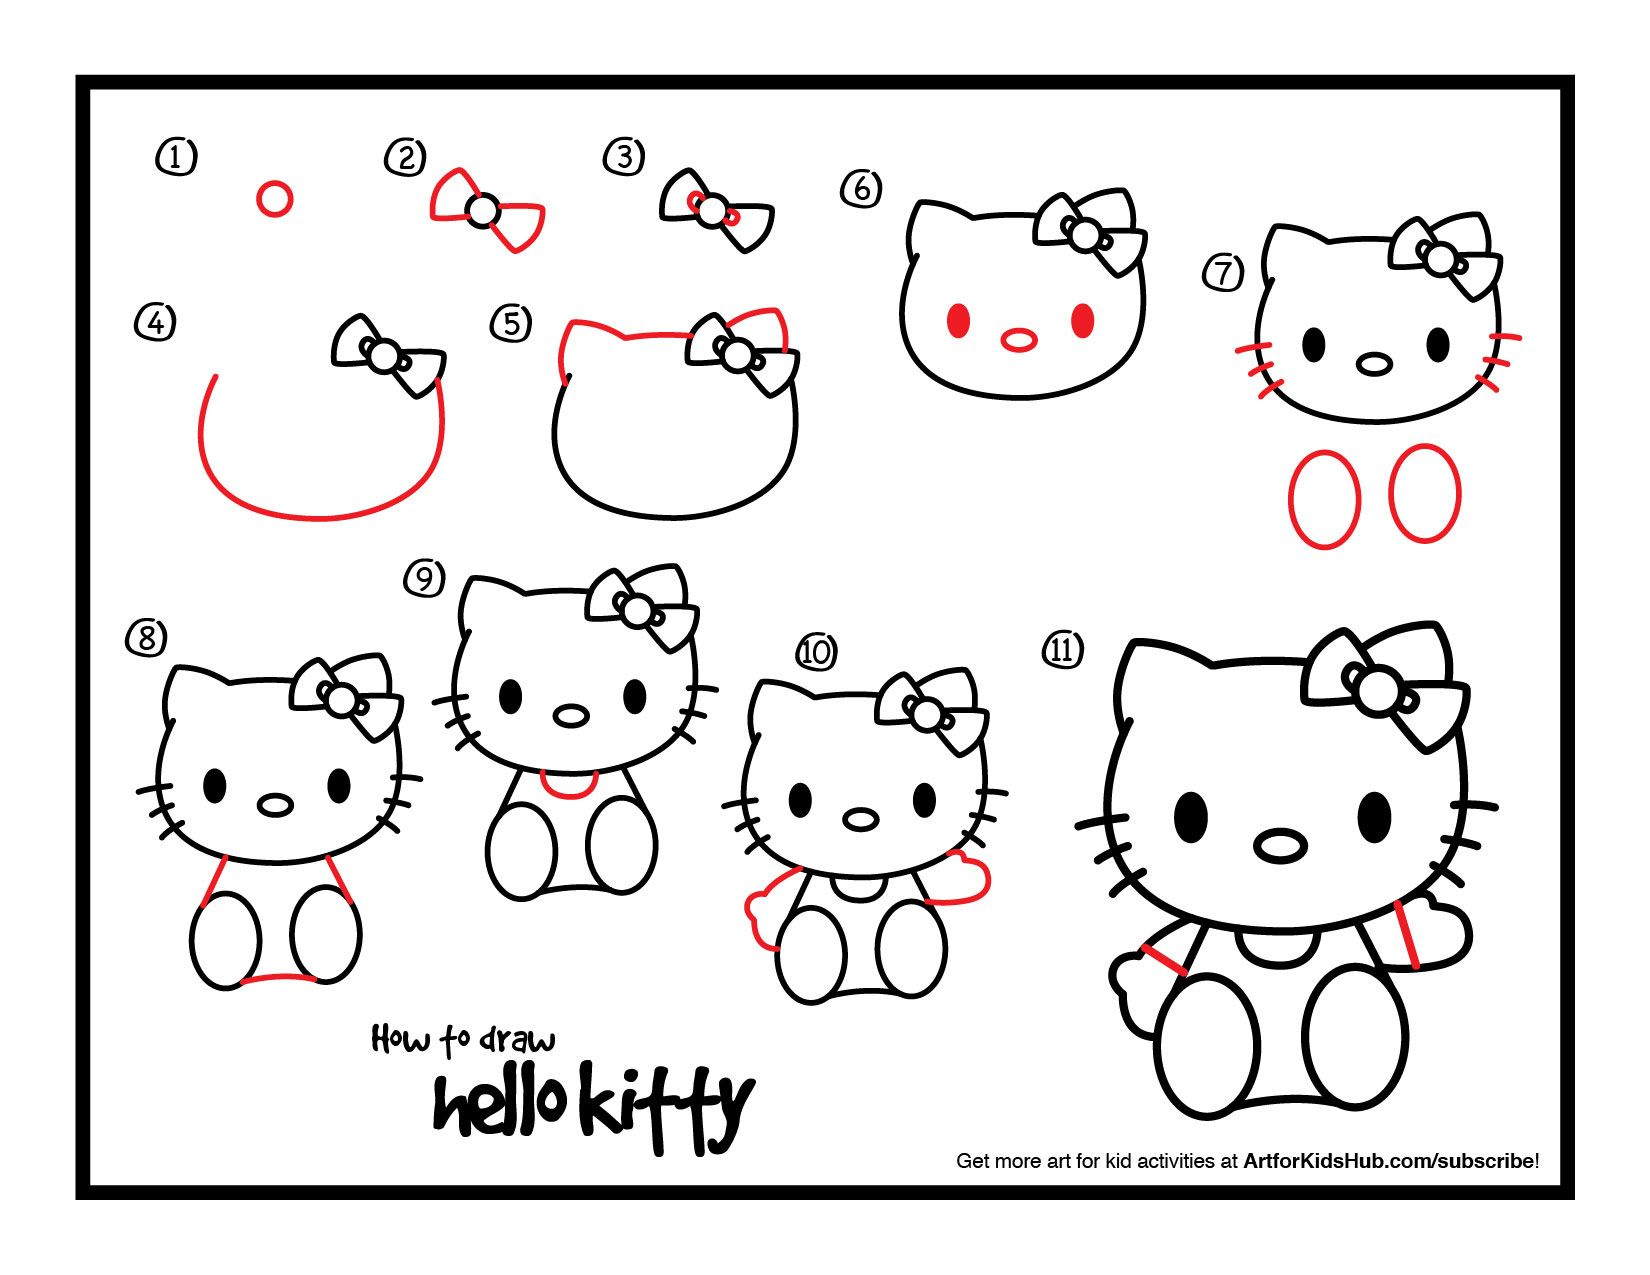 download how to draw hello kitty - Hello Kitty Drawing Pictures